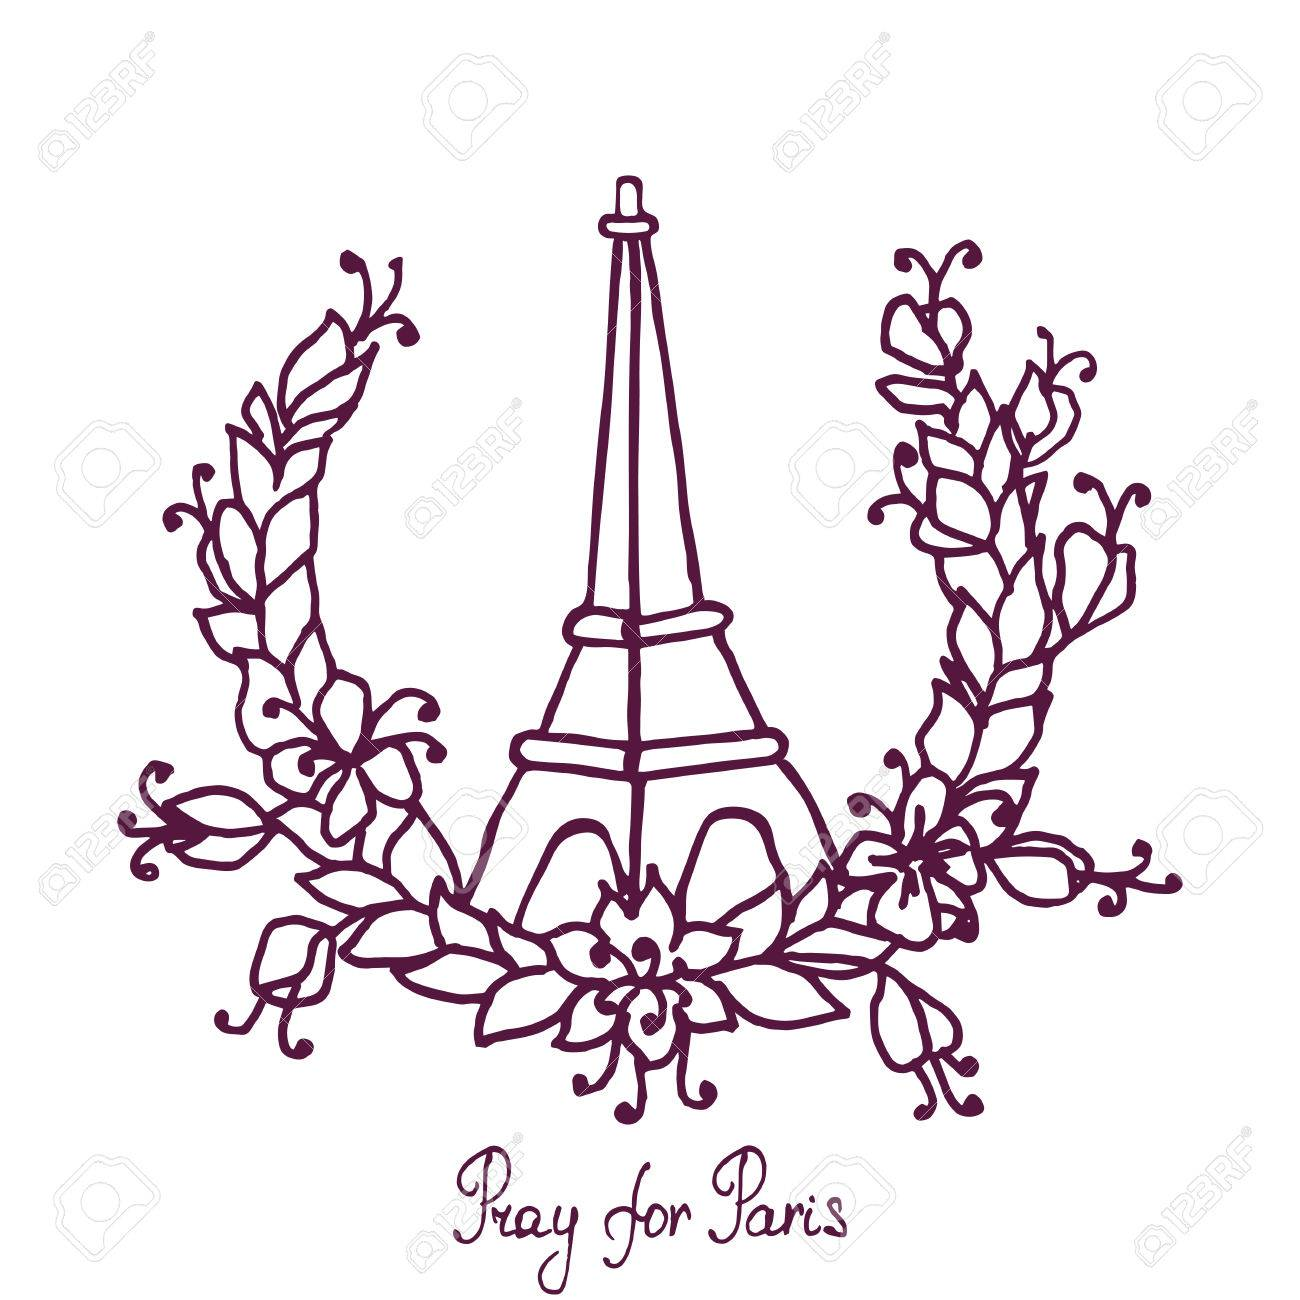 1300x1300 Hand Drawing Eiffel Tower And Floral Wreath. Pray For Paris